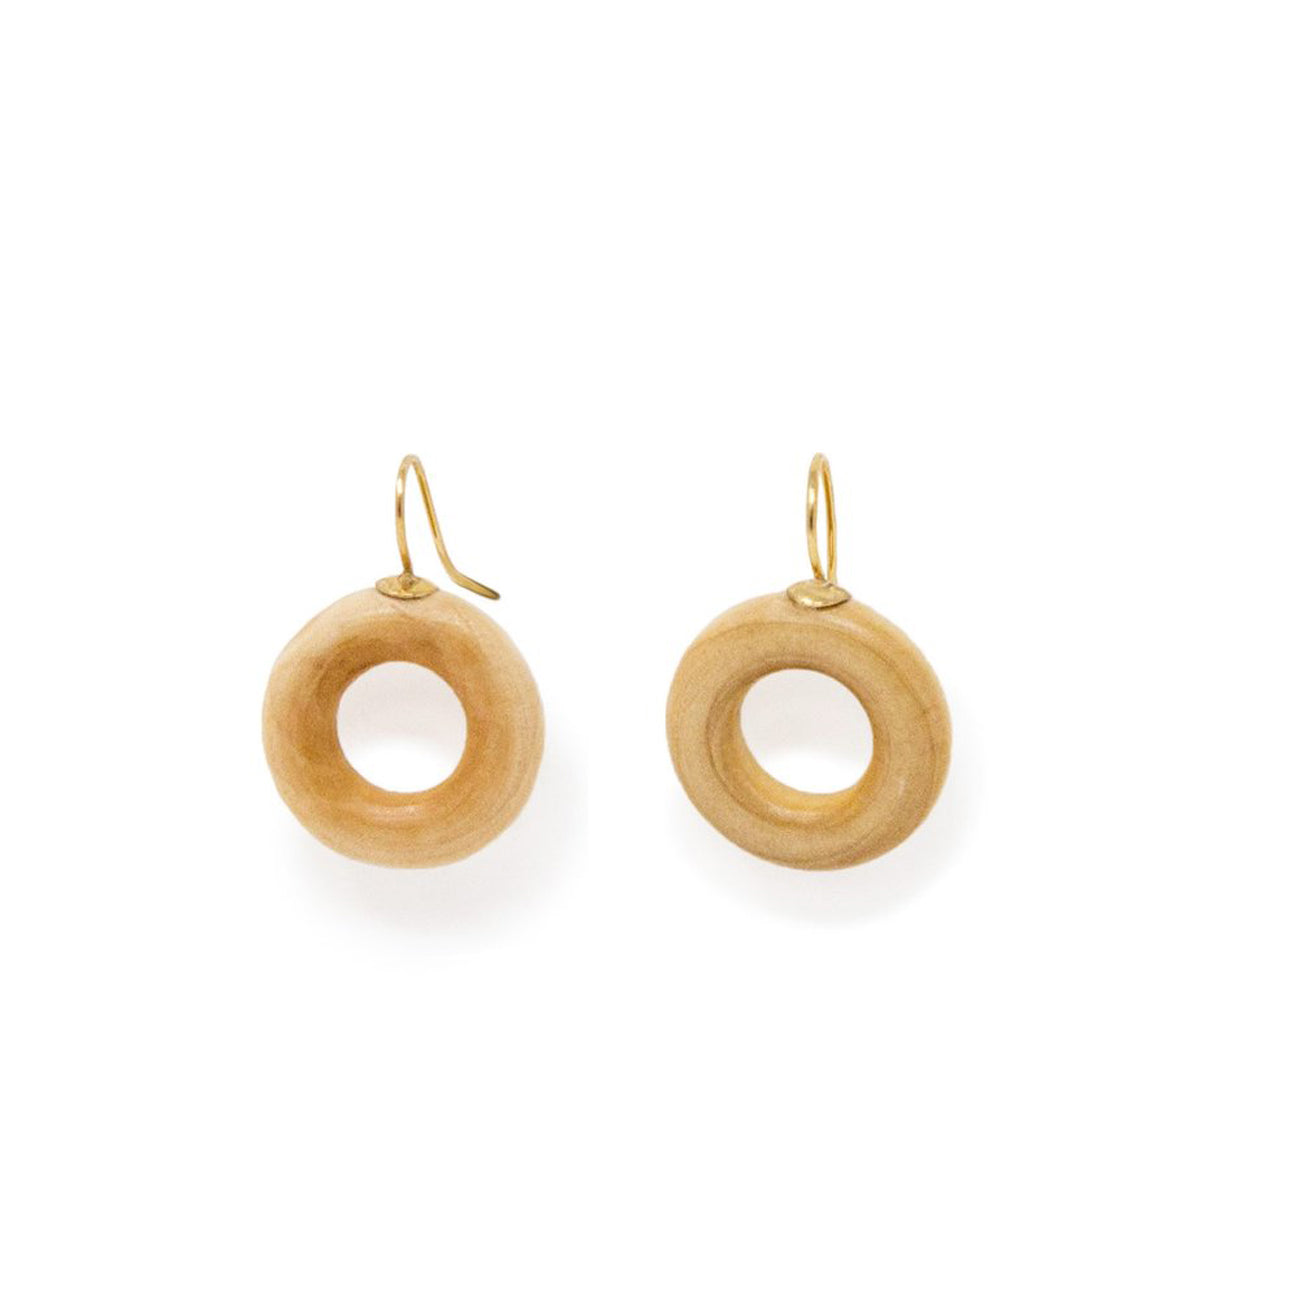 Sophie Monet Roundabout Earrings